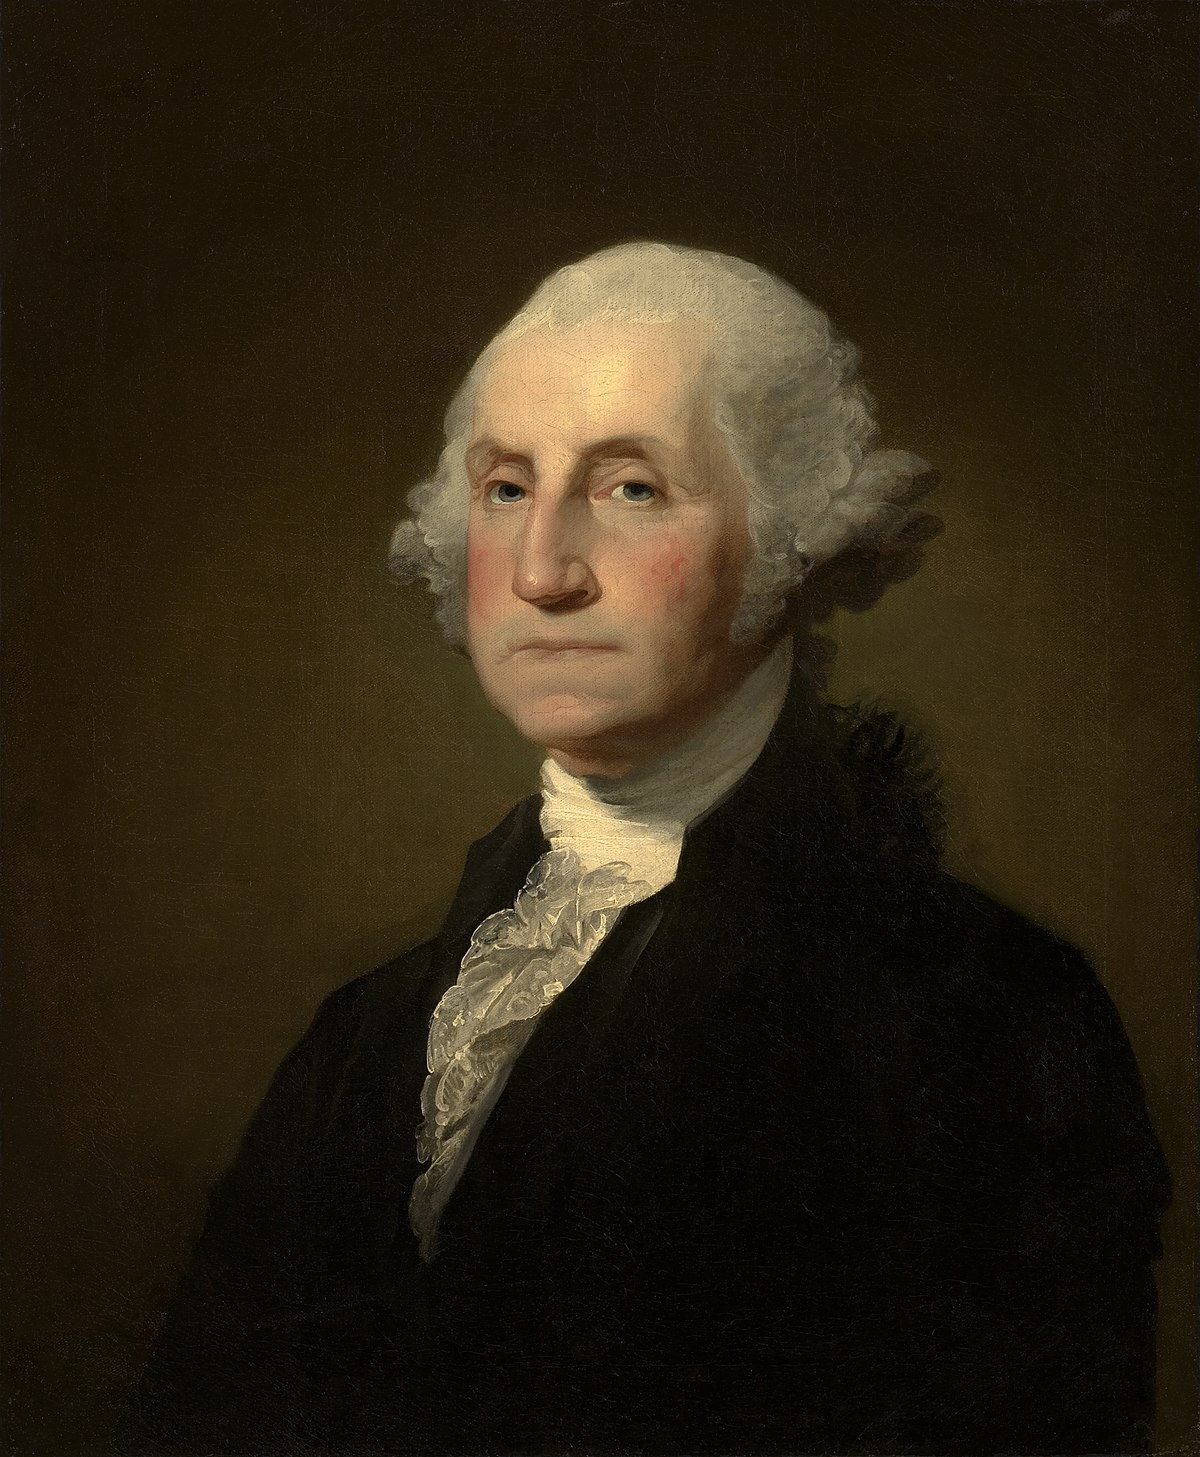 https://upload.wikimedia.org/wikipedia/commons/thumb/b/b6/Gilbert_Stuart_Williamstown_Portrait_of_George_Washington.jpg/1200px-Gilbert_Stuart_Williamstown_Portrait_of_George_Washington.jpg